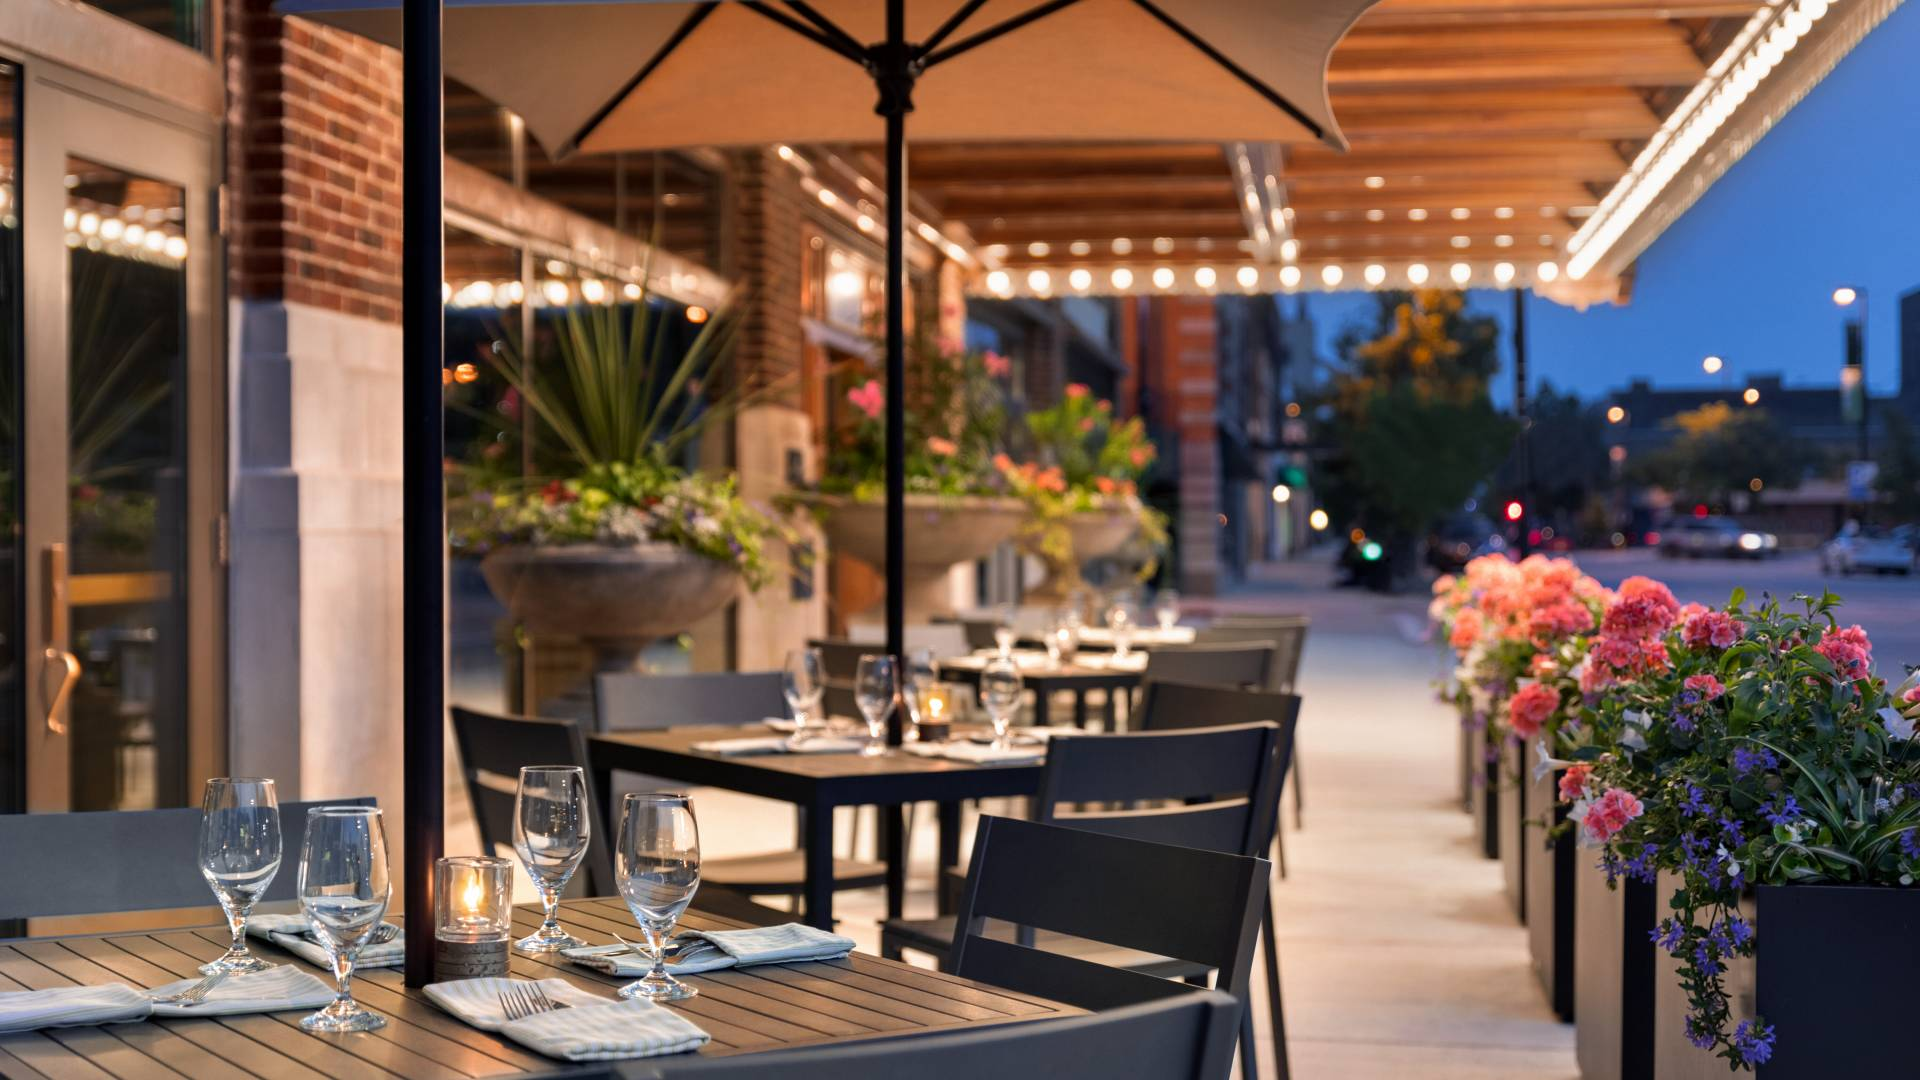 The Green Bay food scene is thriving with classic Wisconsin supper clubs to trendy fine dining restaurants and everywhere in between. Enjoy patio dining or an intimate indoor meal and experience local cuisine!